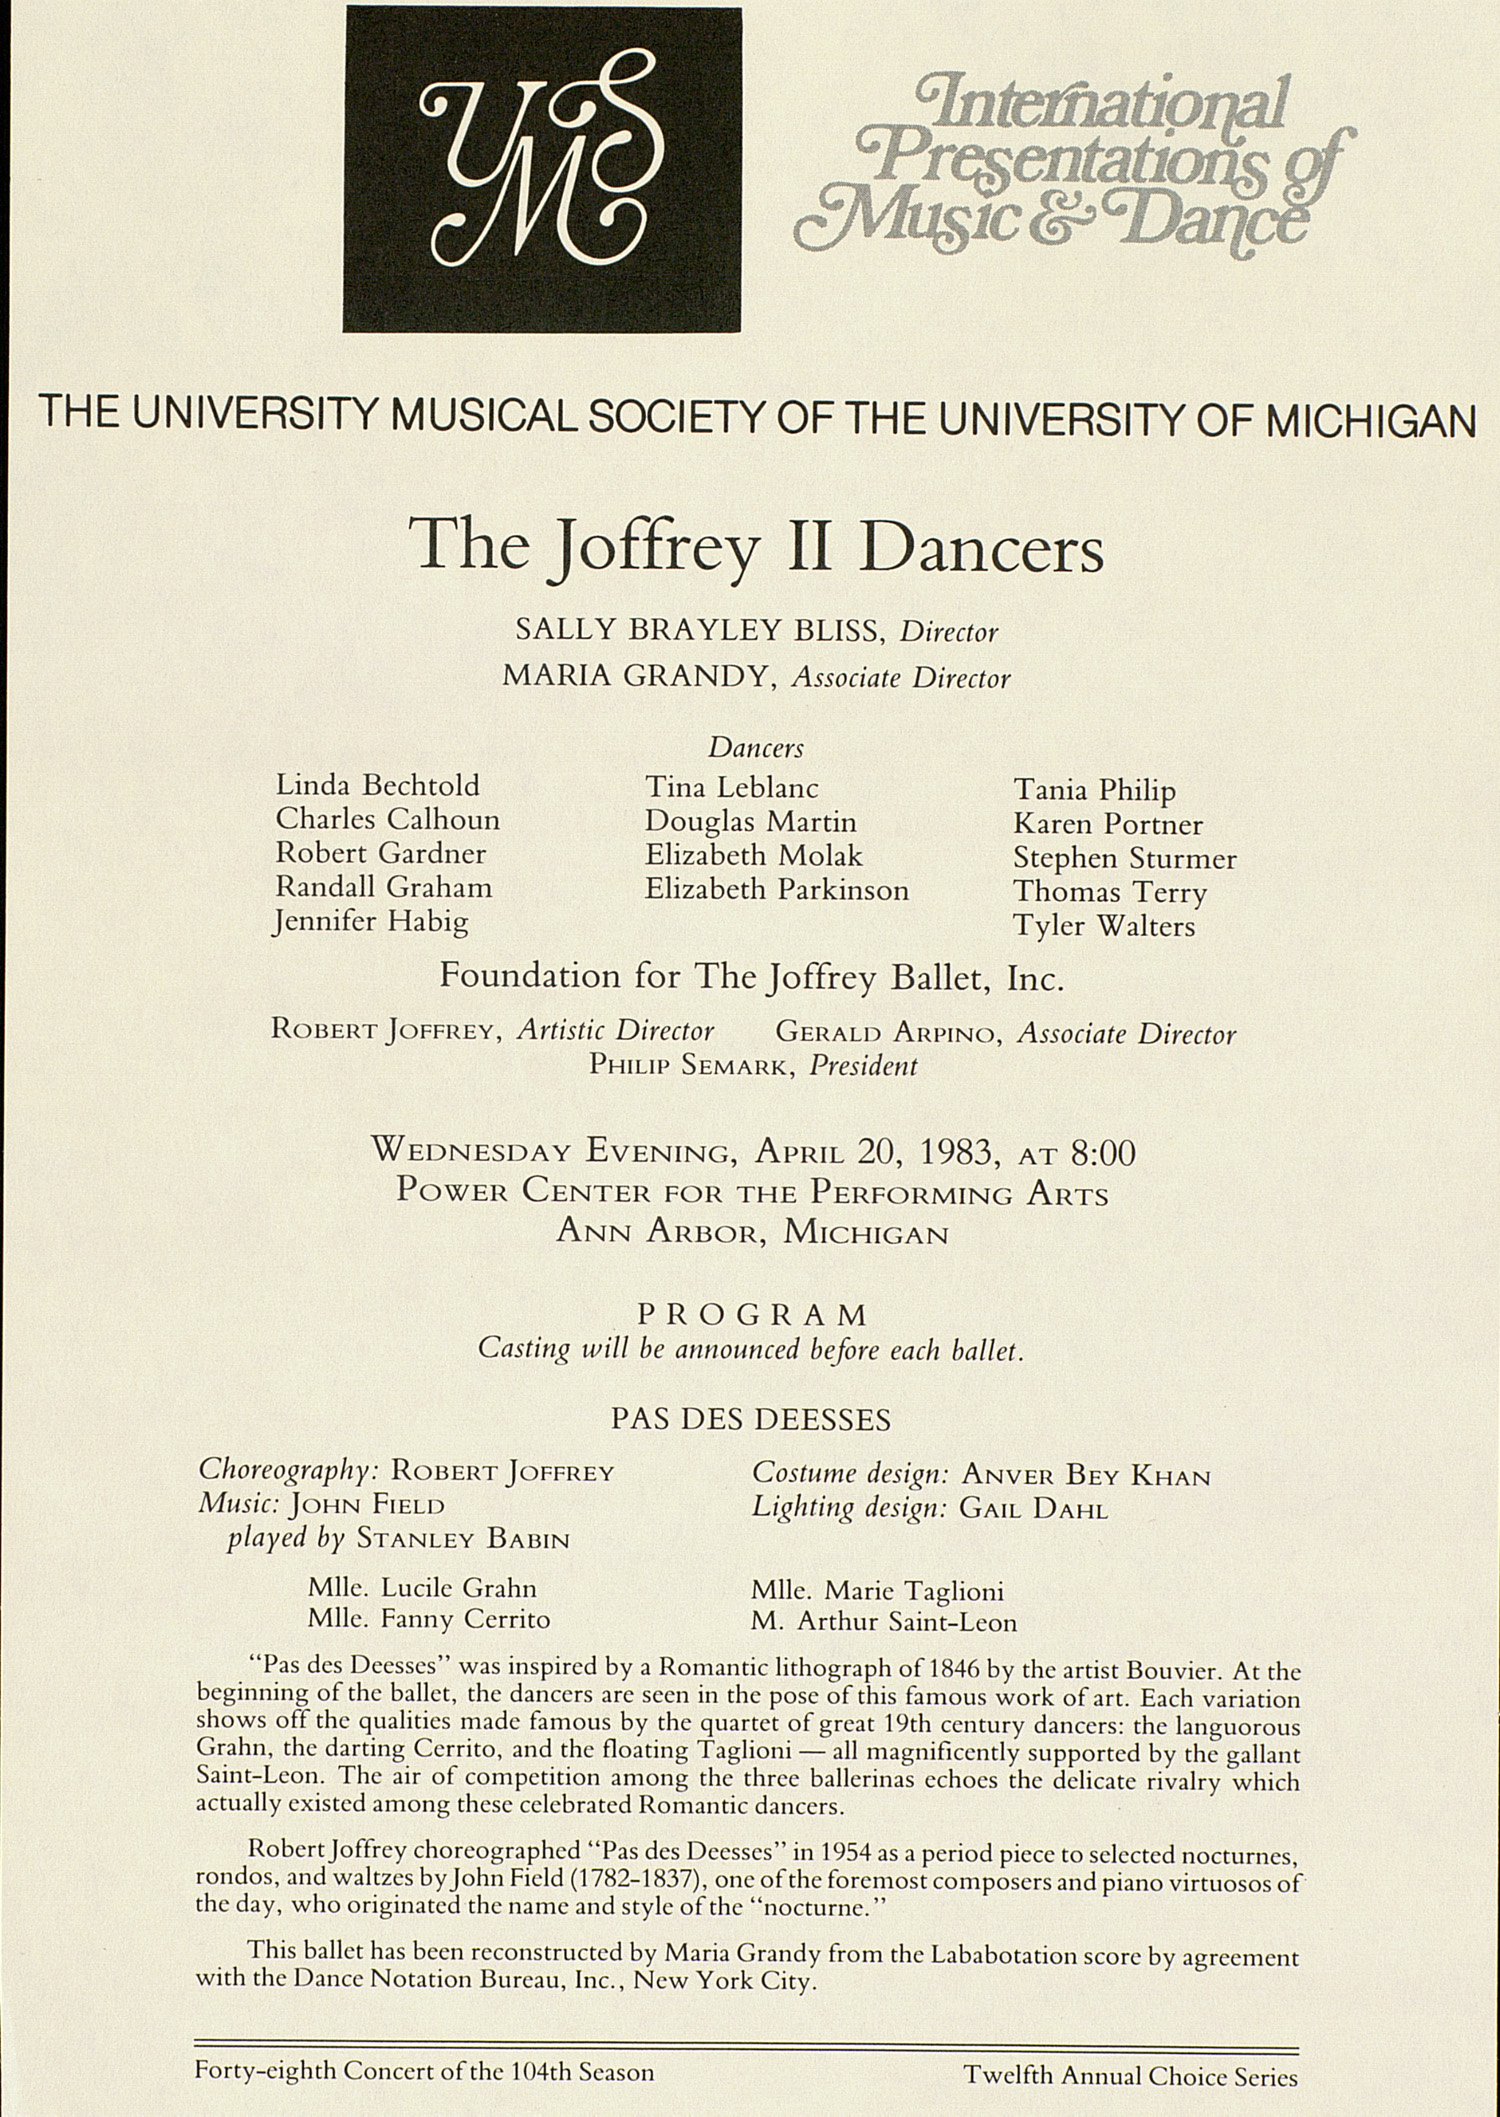 UMS Concert Program, April 20, 1983: The Joffrey II Dancers --  image